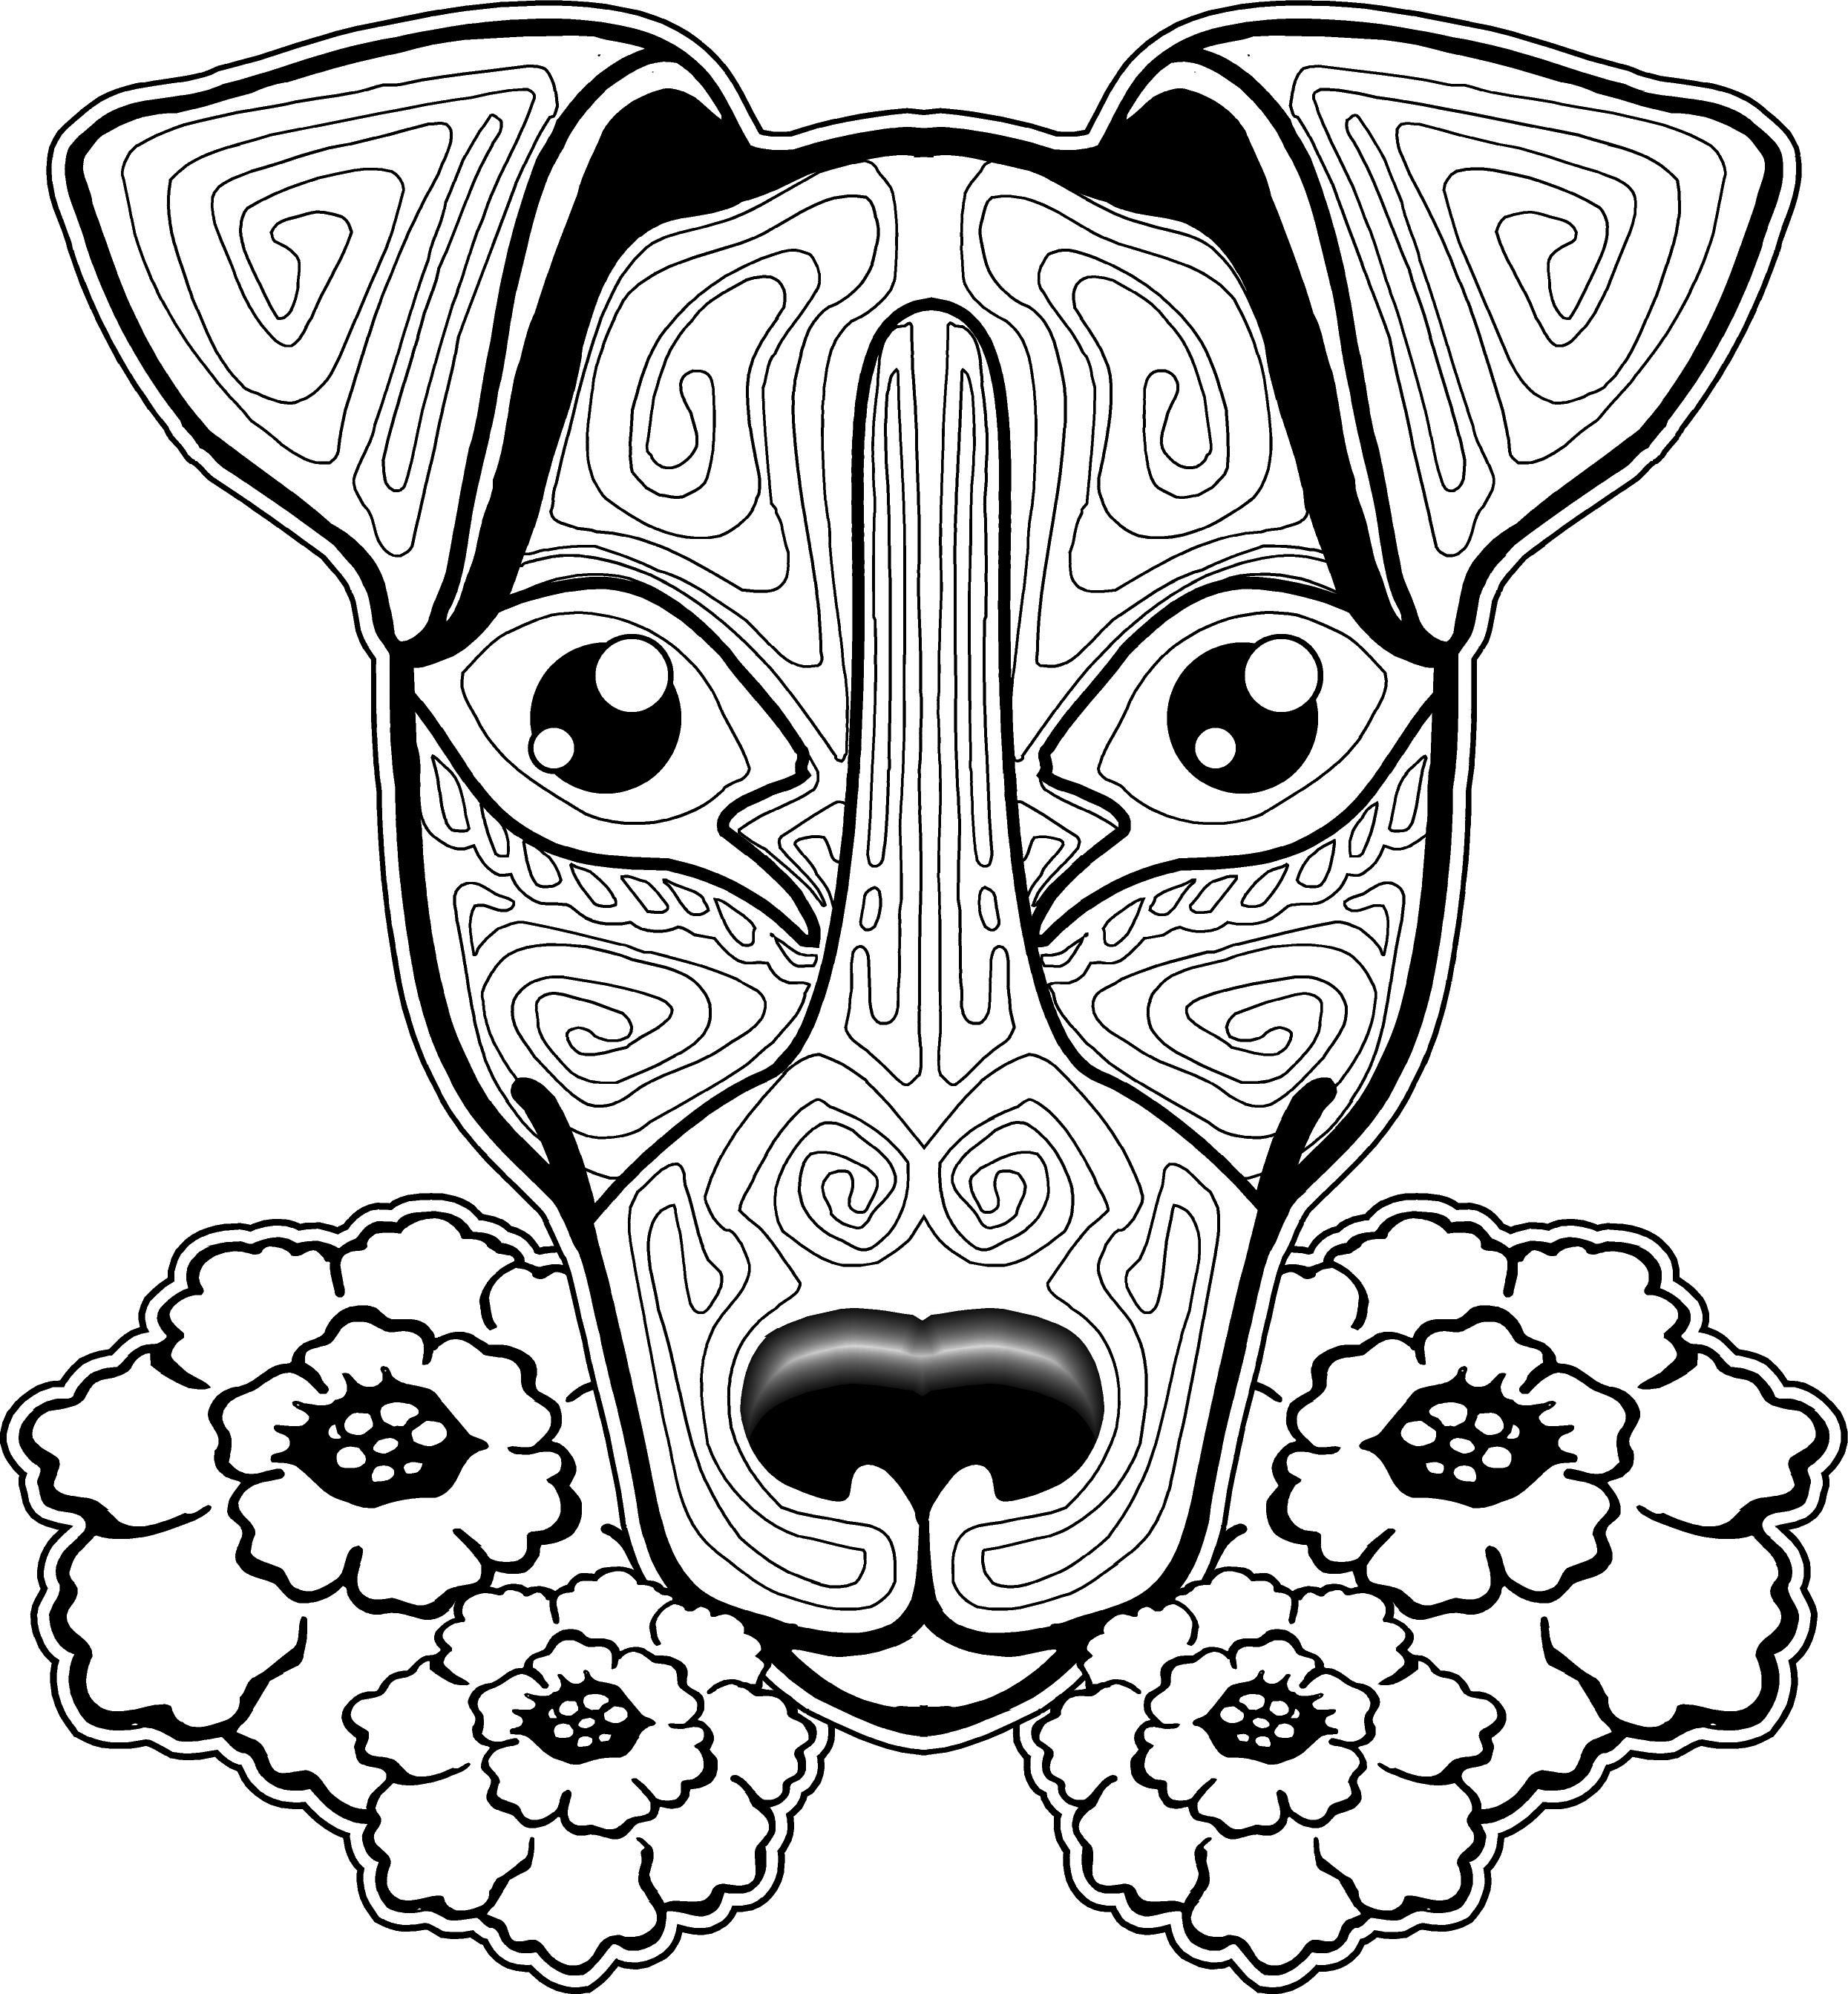 Dog Coloring Pages For Adults Dog Coloring Pages Adults At Getdrawings Free For Personal Use